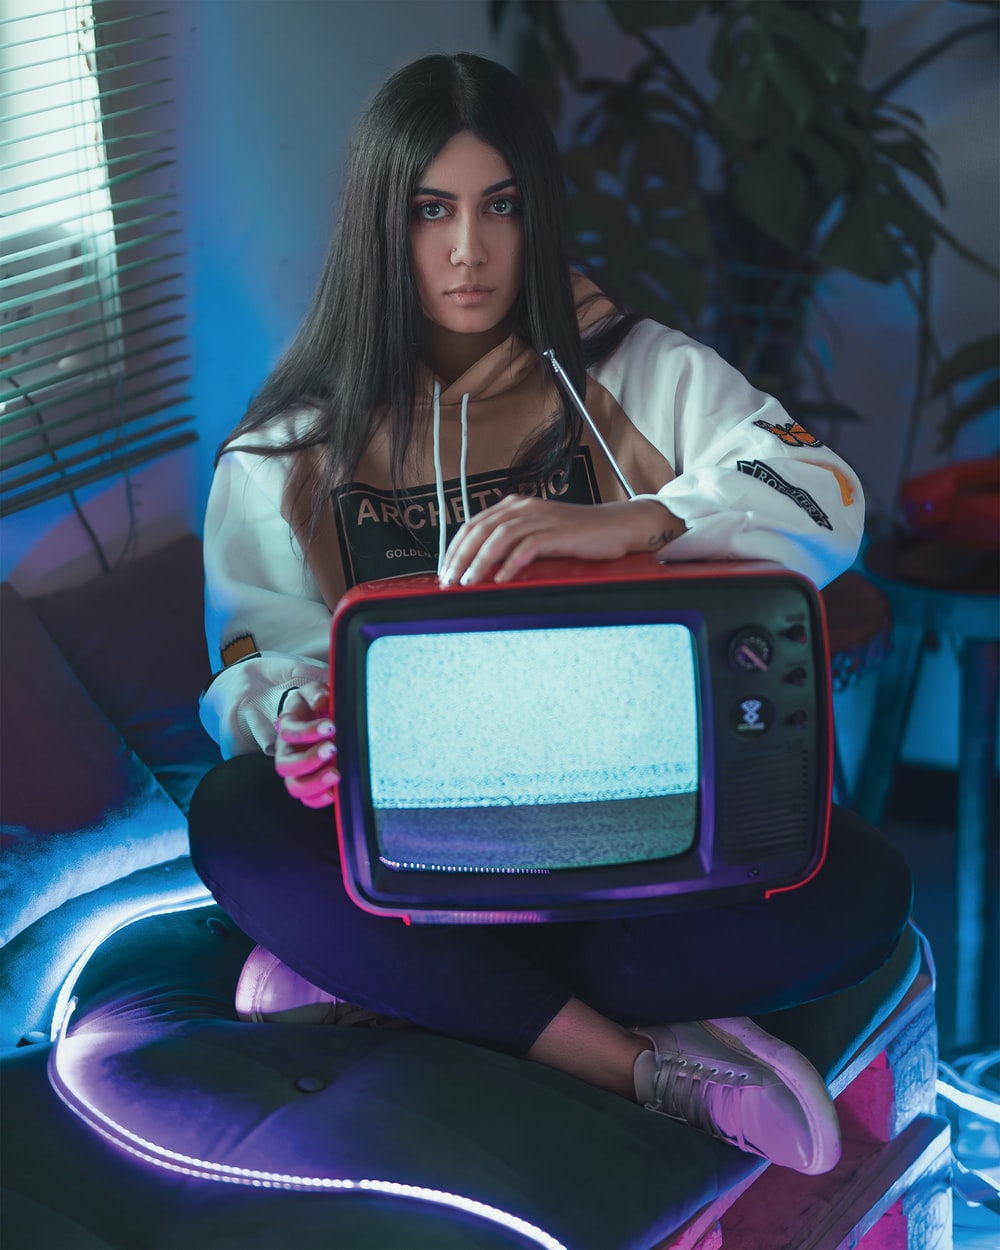 woman wearing pullover hoodie holding red CRT TV